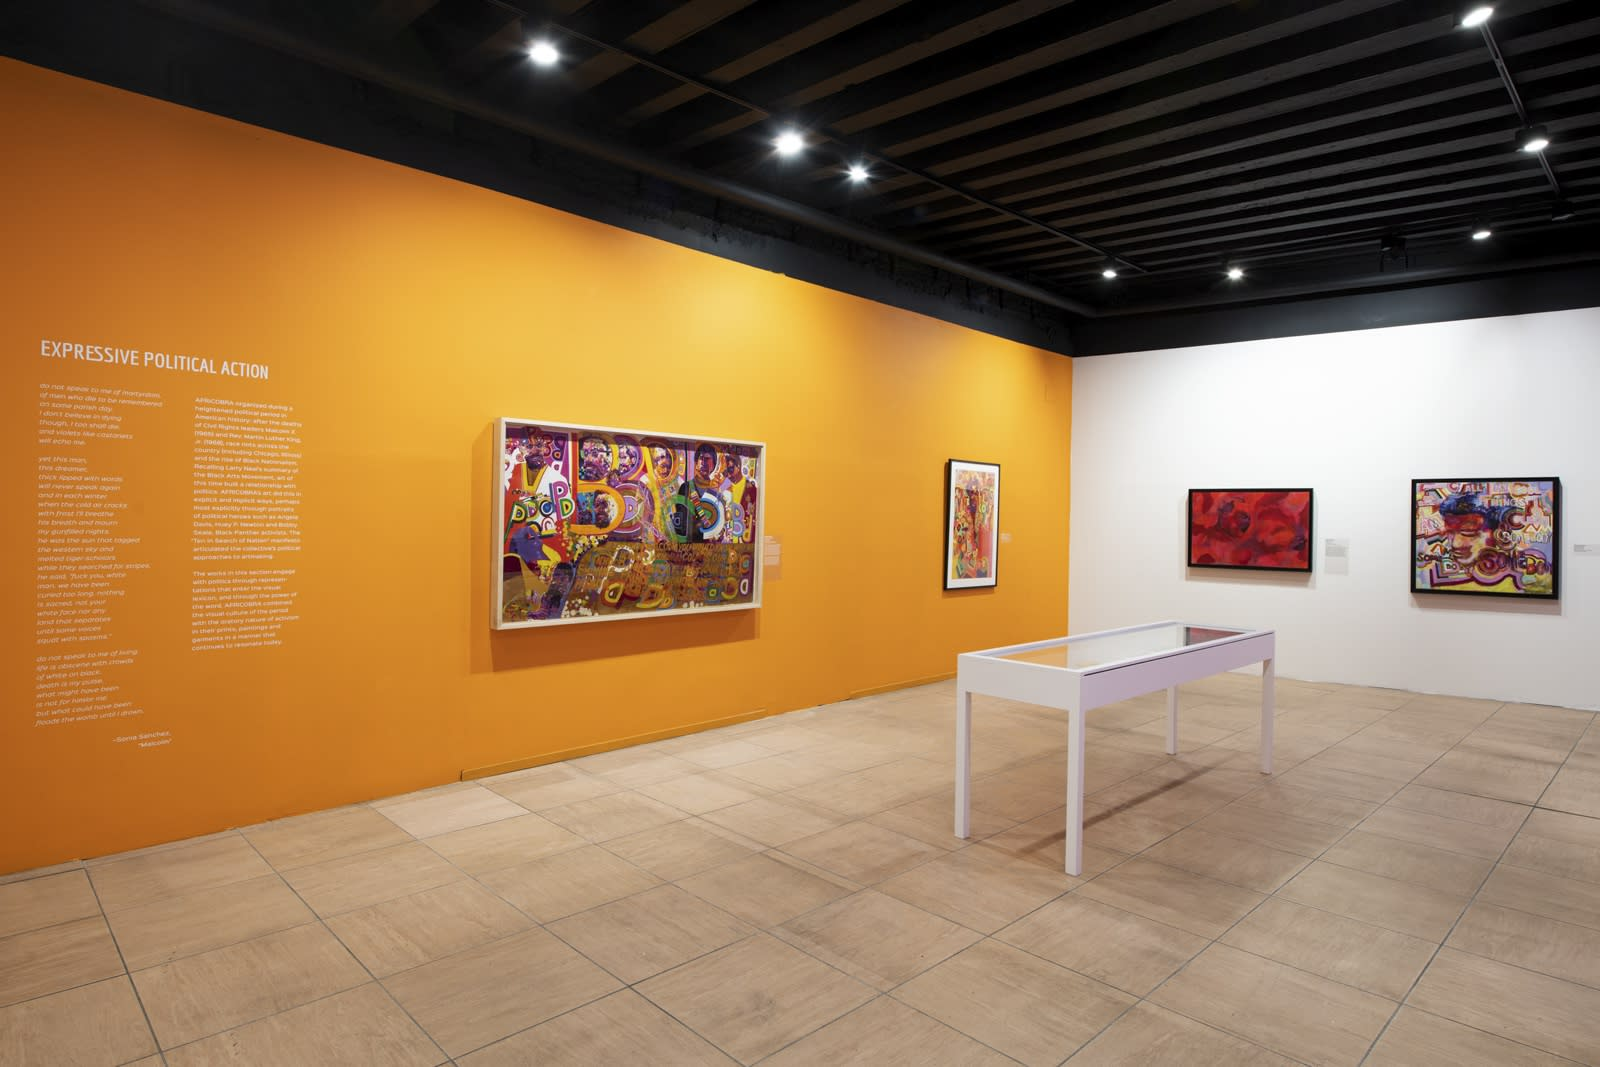 Installation view of AFRICOBRA: Nation Time, 2019 Venice Biennale.